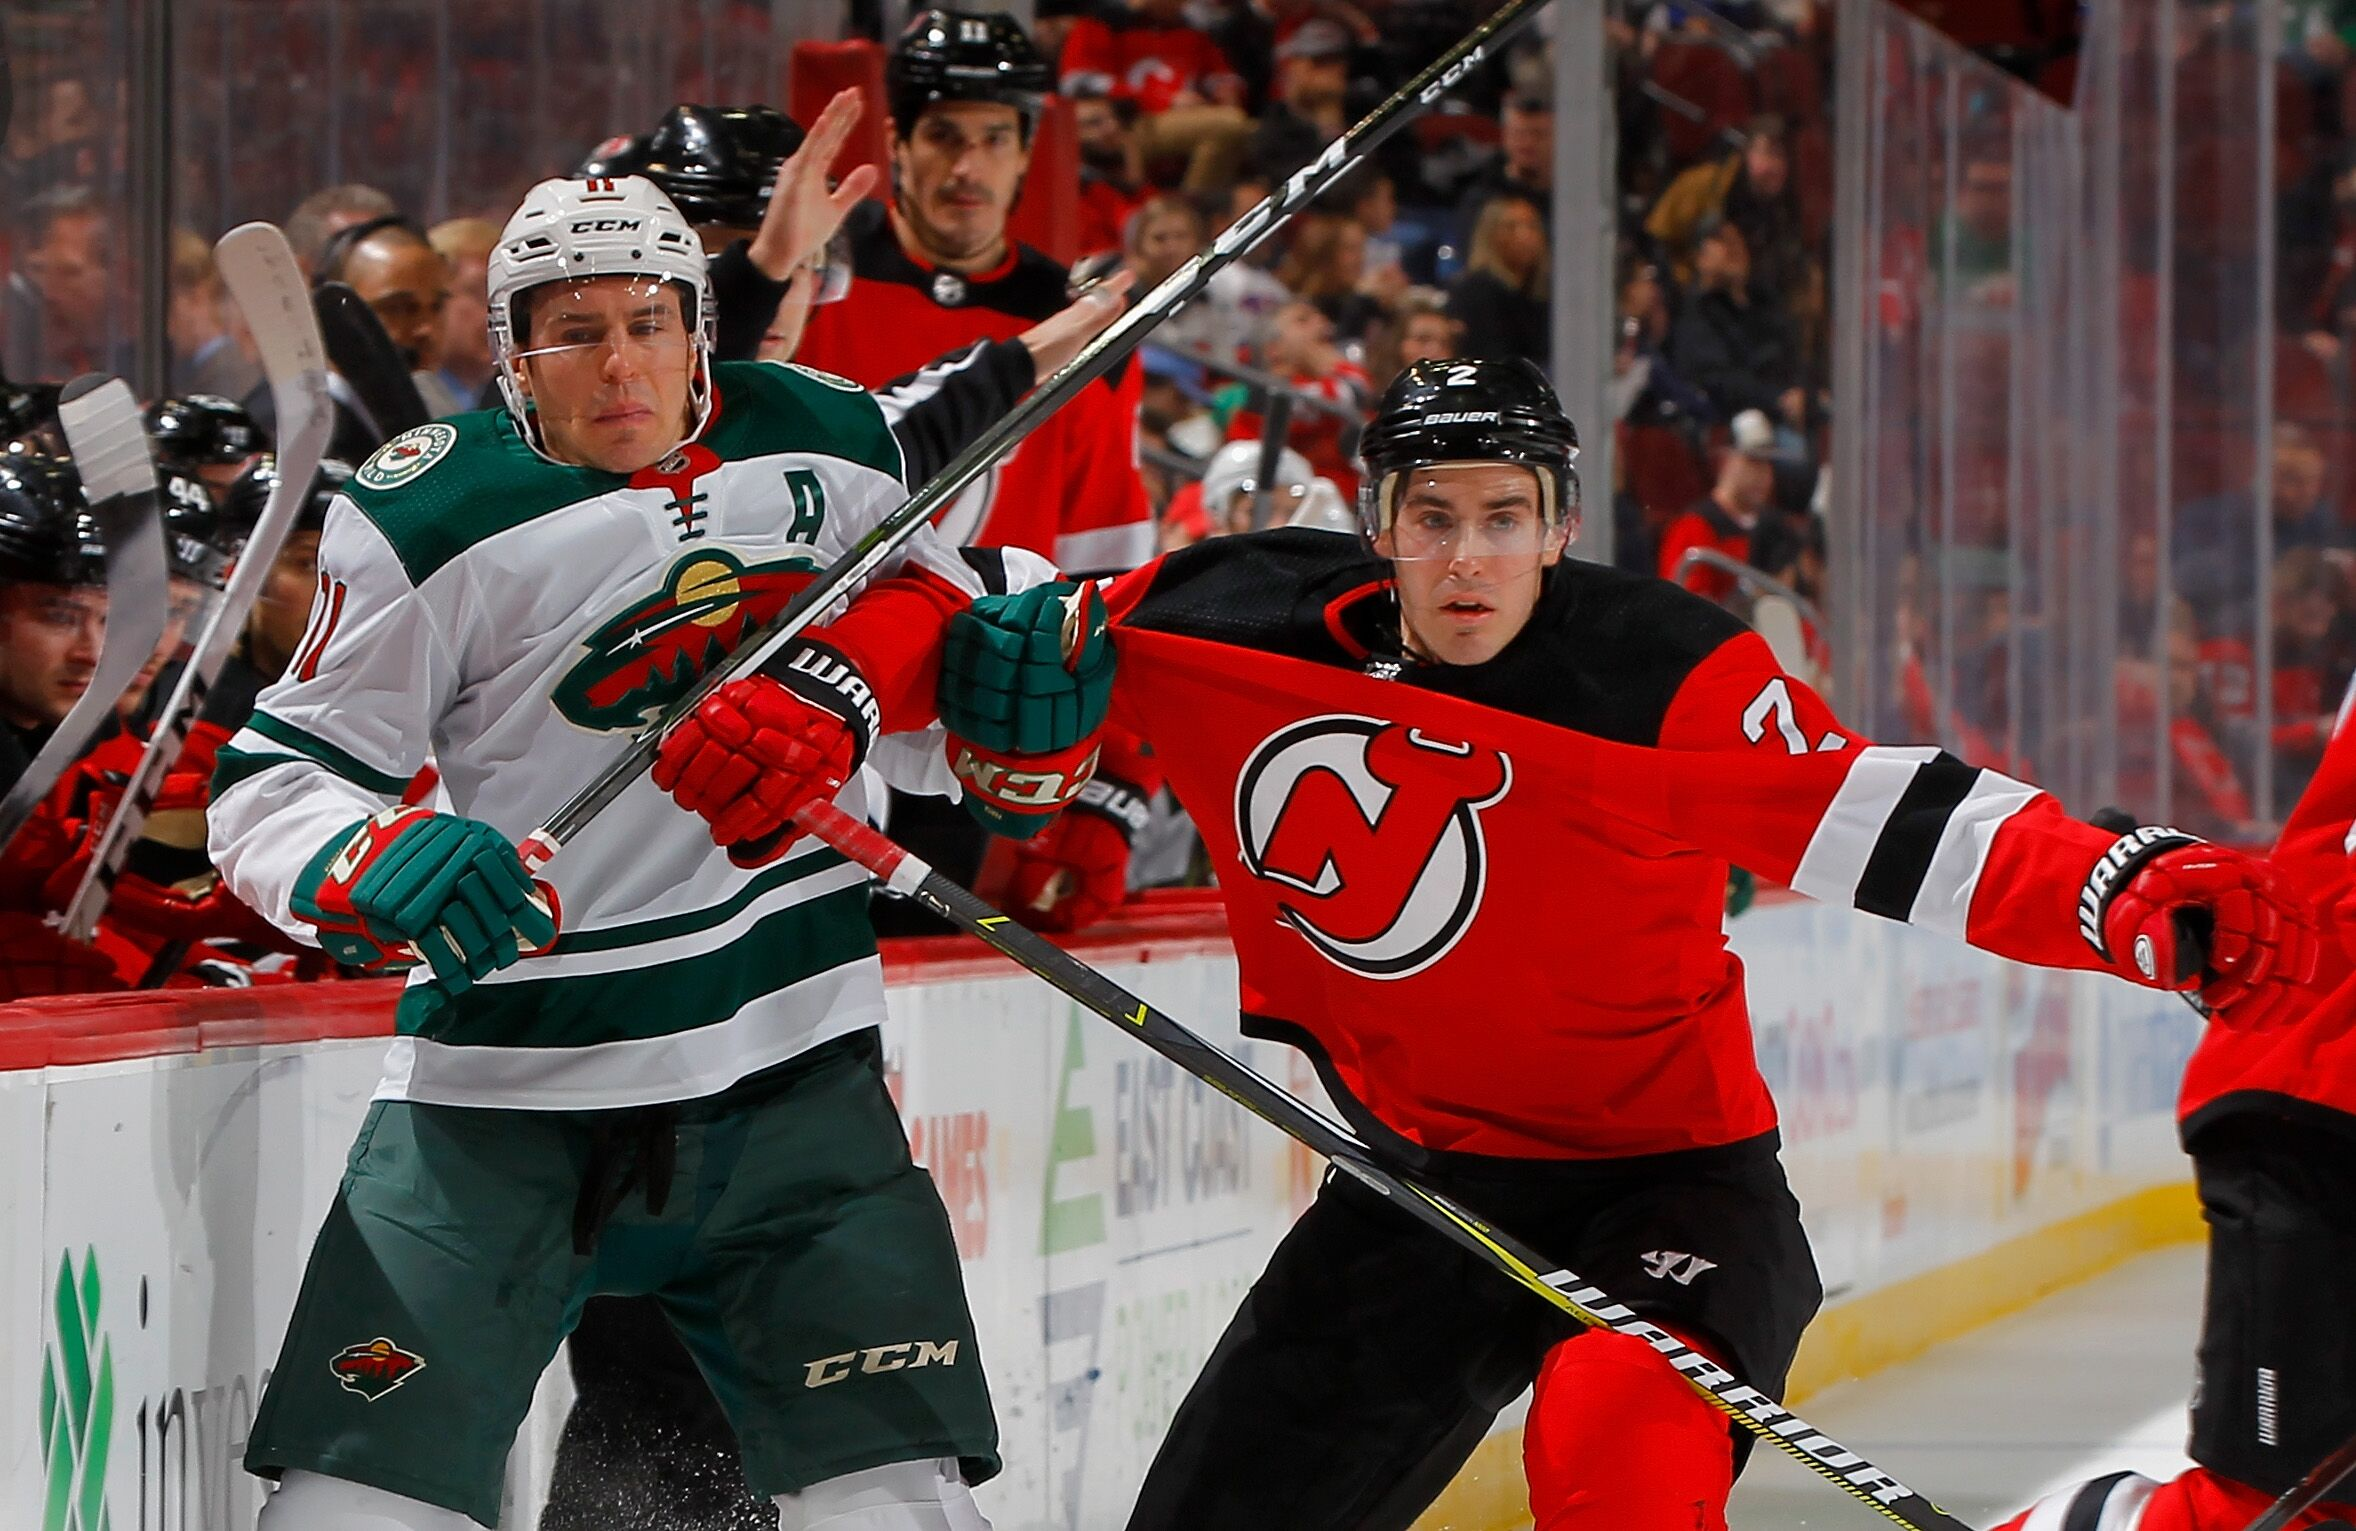 d6f845ae11c New Jersey Devils: Did Team Luck Out Losing Zach Parise?